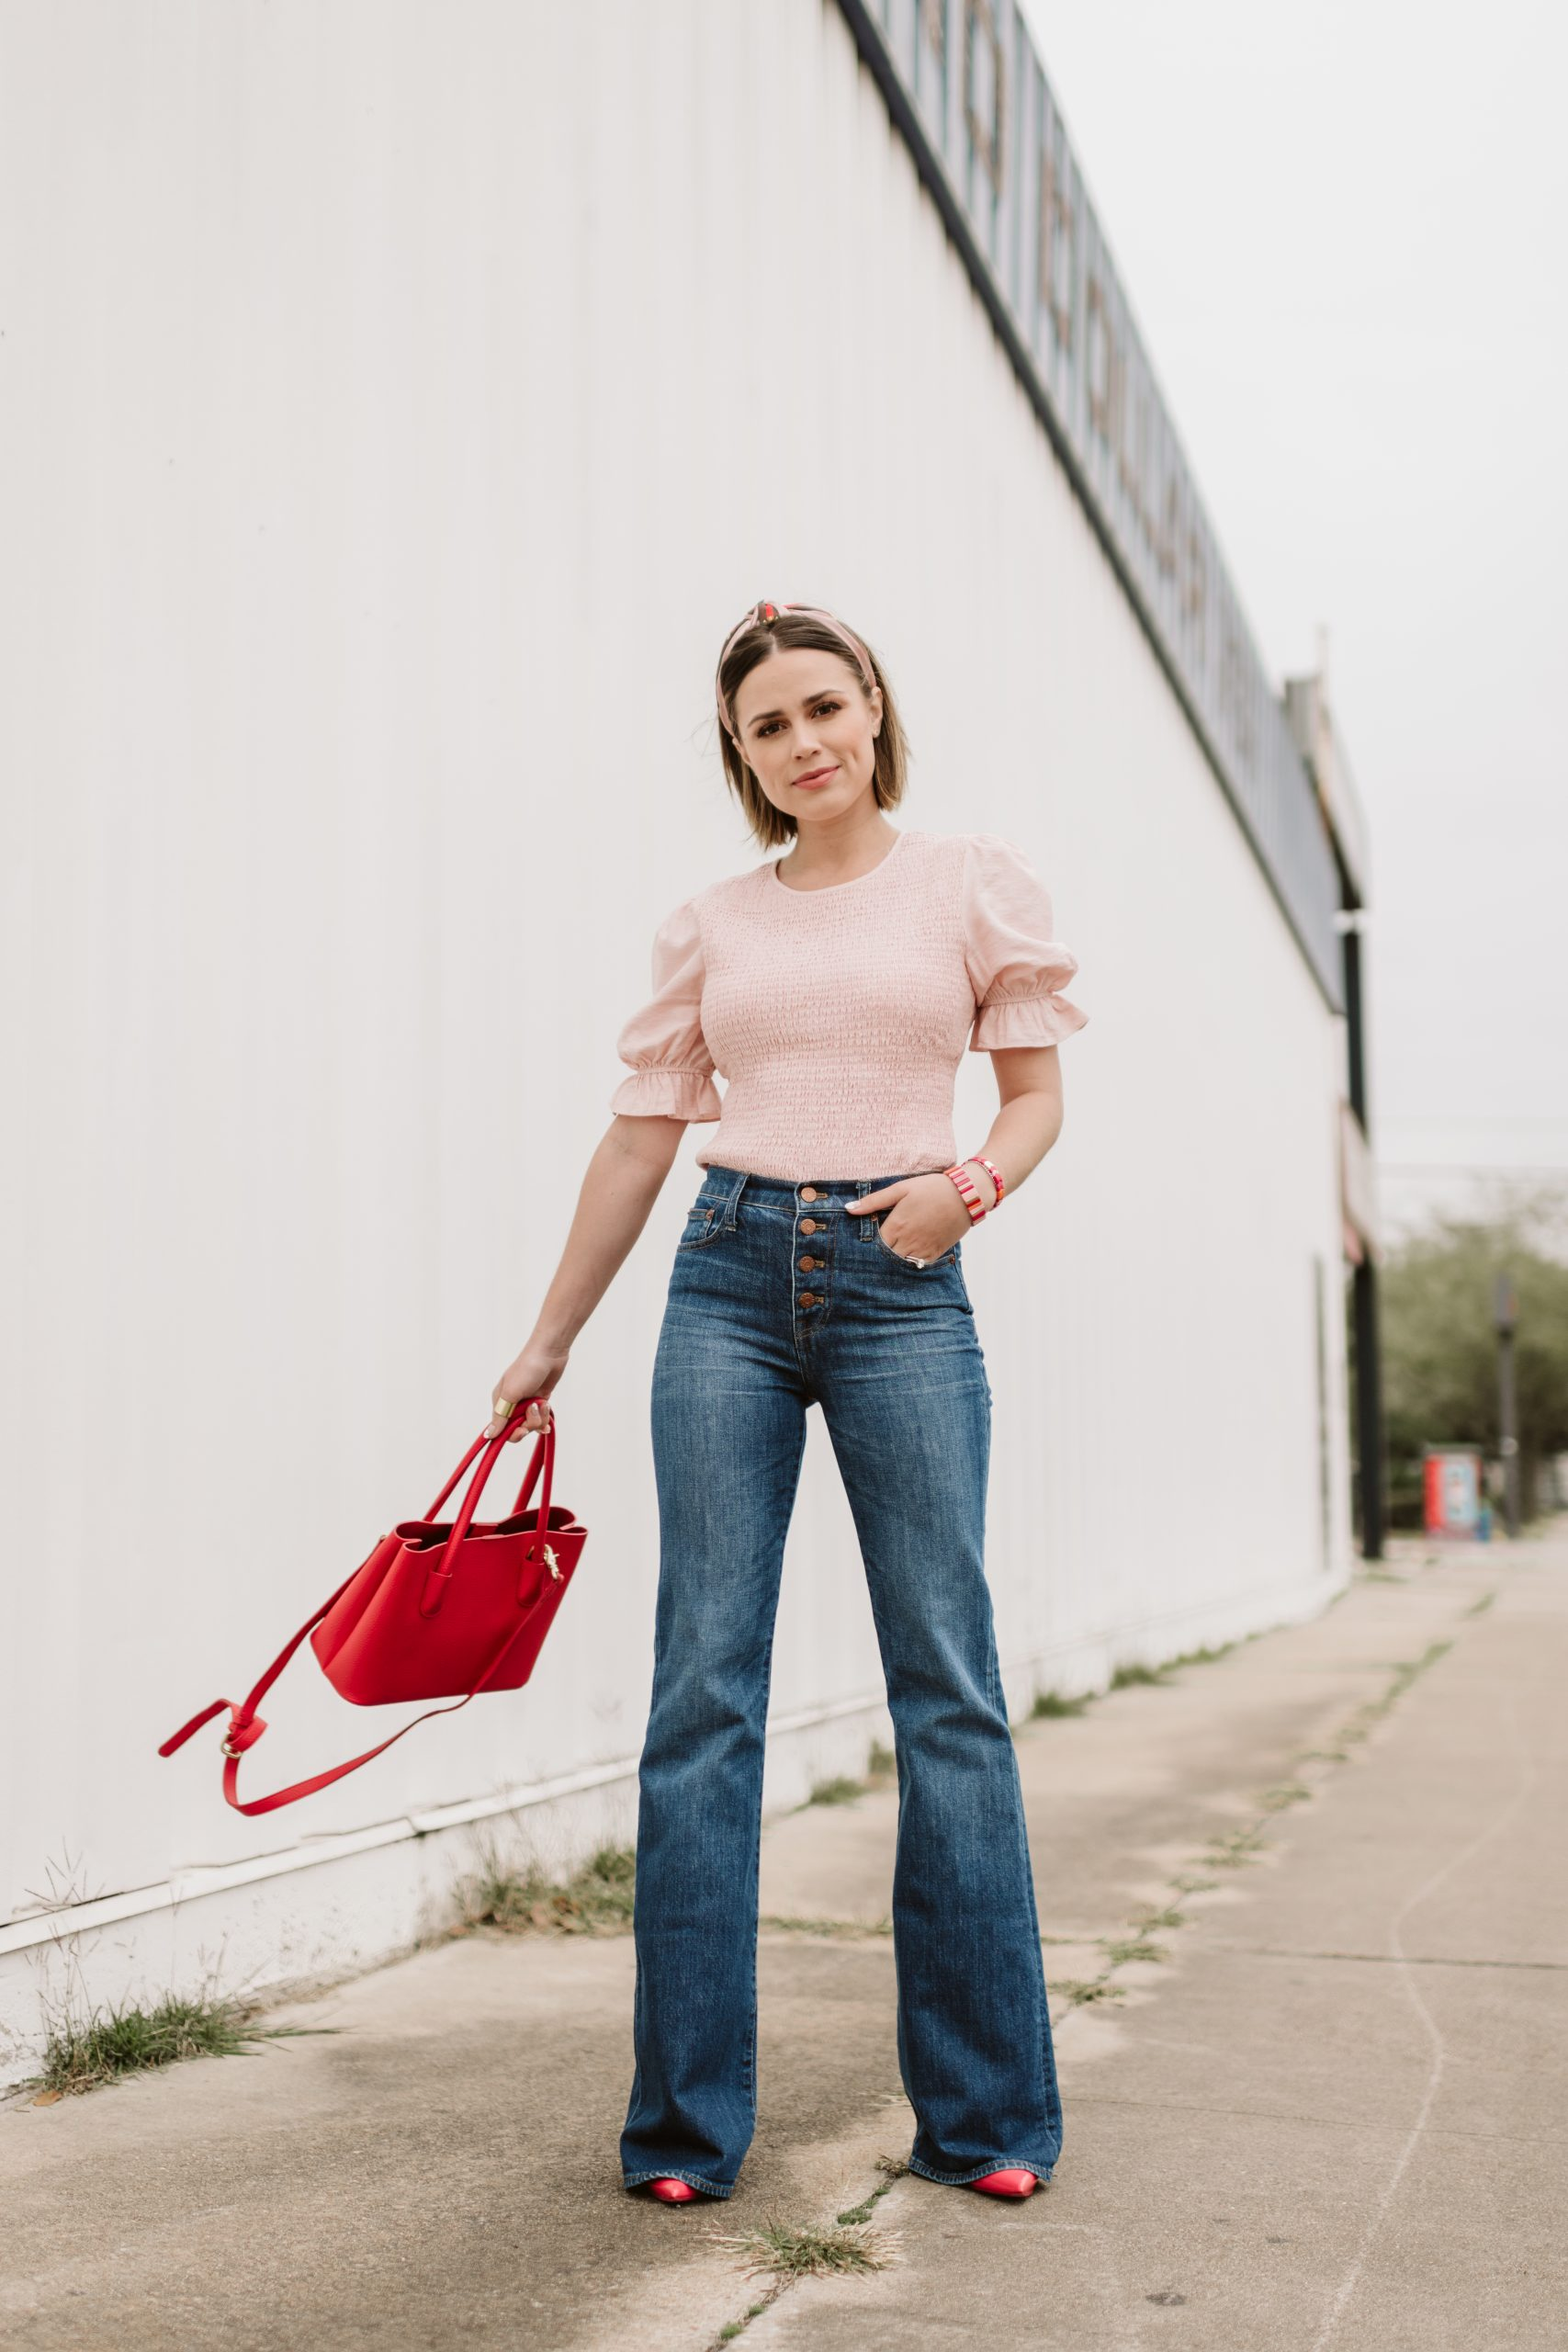 Are you loving the Statement Sleeve Trend? Houston Fashion blogger Elly Brown shares over 20 Statement Sleeve Tops under $75!